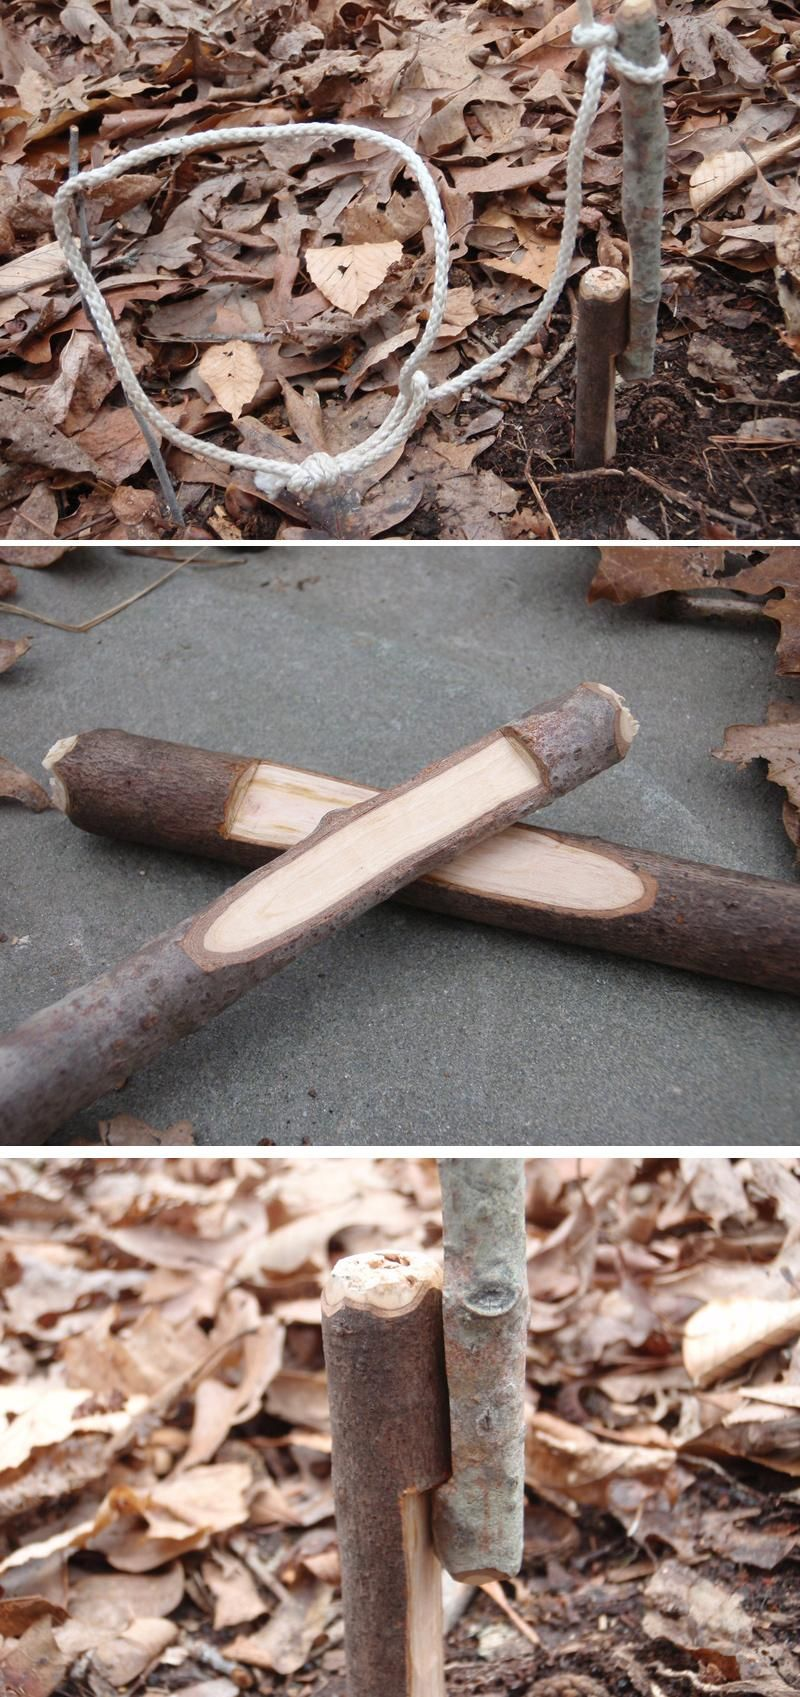 How to Build a Trap: 15 Best Survival Traps | Survival skills every ...